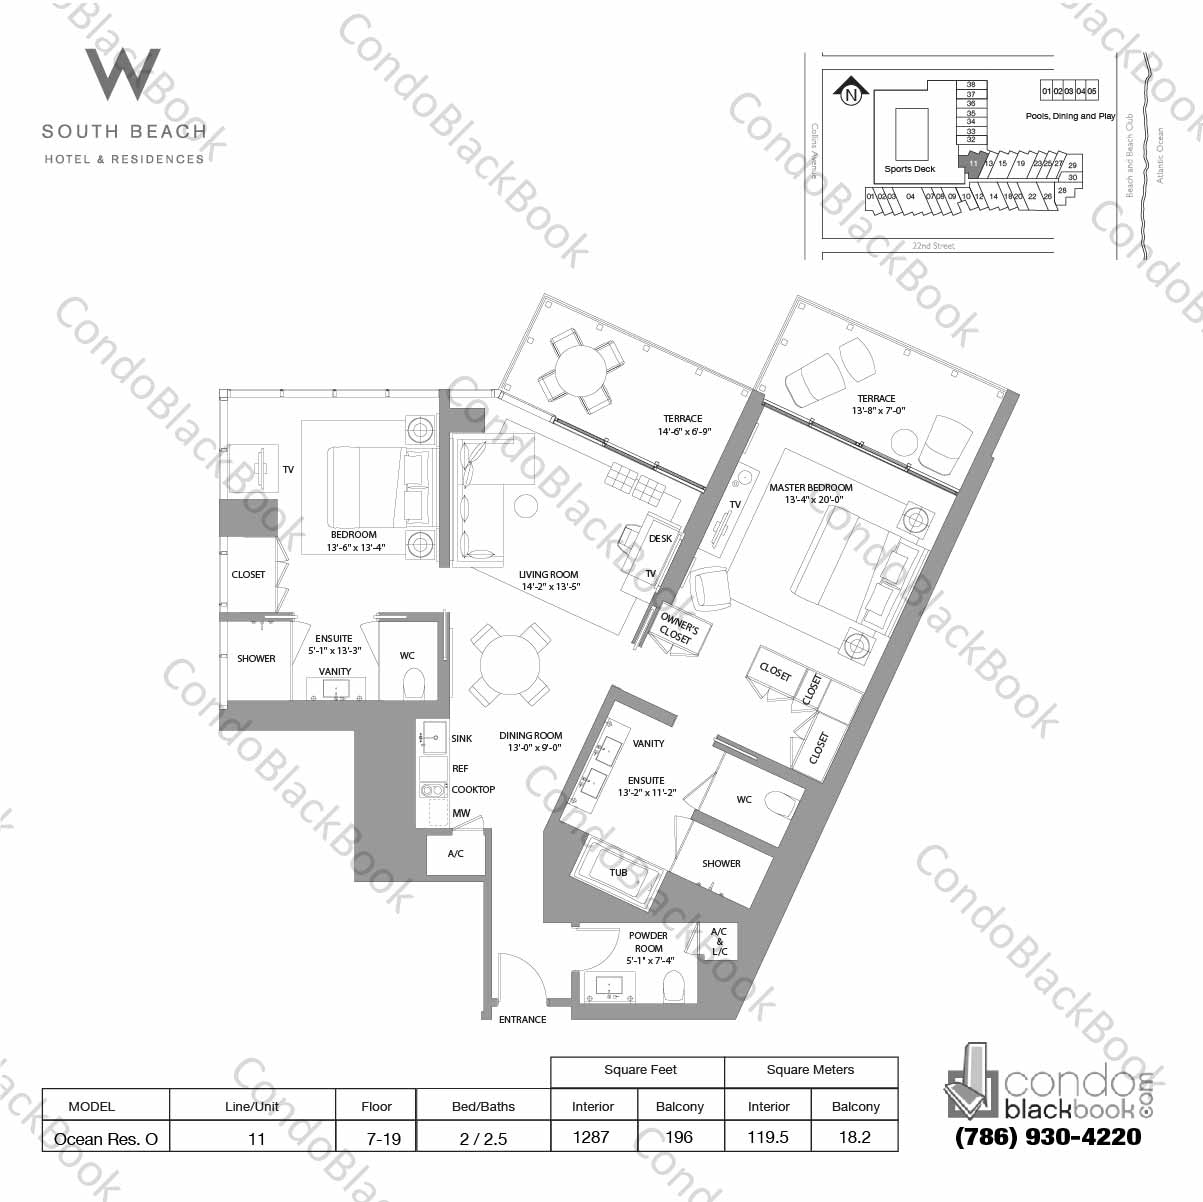 Floor plan for W South Beach South Beach Miami Beach, model Ocean Res. O, line 11, 2 / 2.5 bedrooms, 1287 sq ft